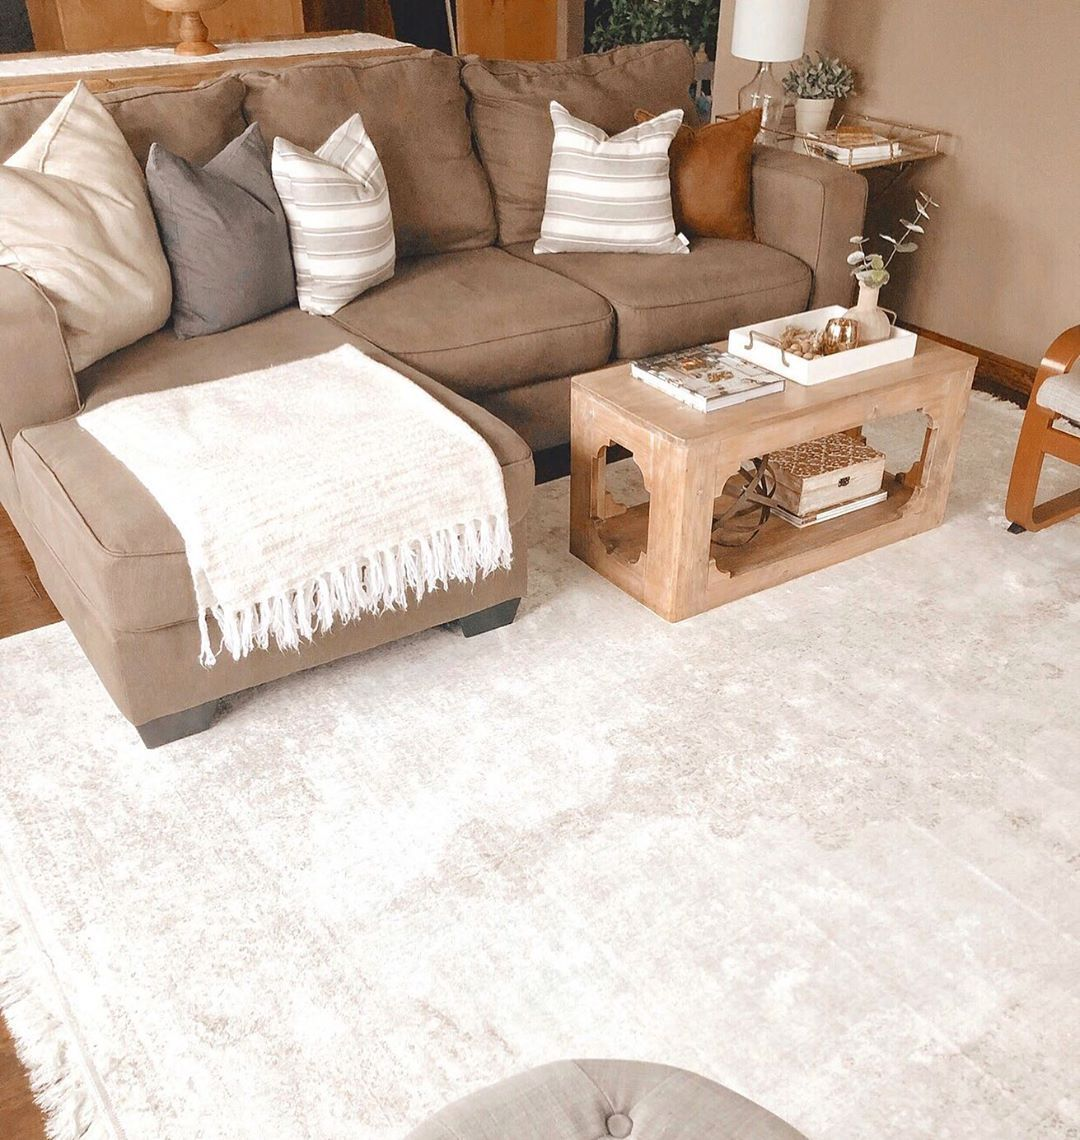 The New Rug Is Down And I Love It In Here It Really Brightens Up This Space While Tying In The Taupe Couch Taupe Couch Couches Living Room Living Room Designs #taupe #couch #living #room #ideas